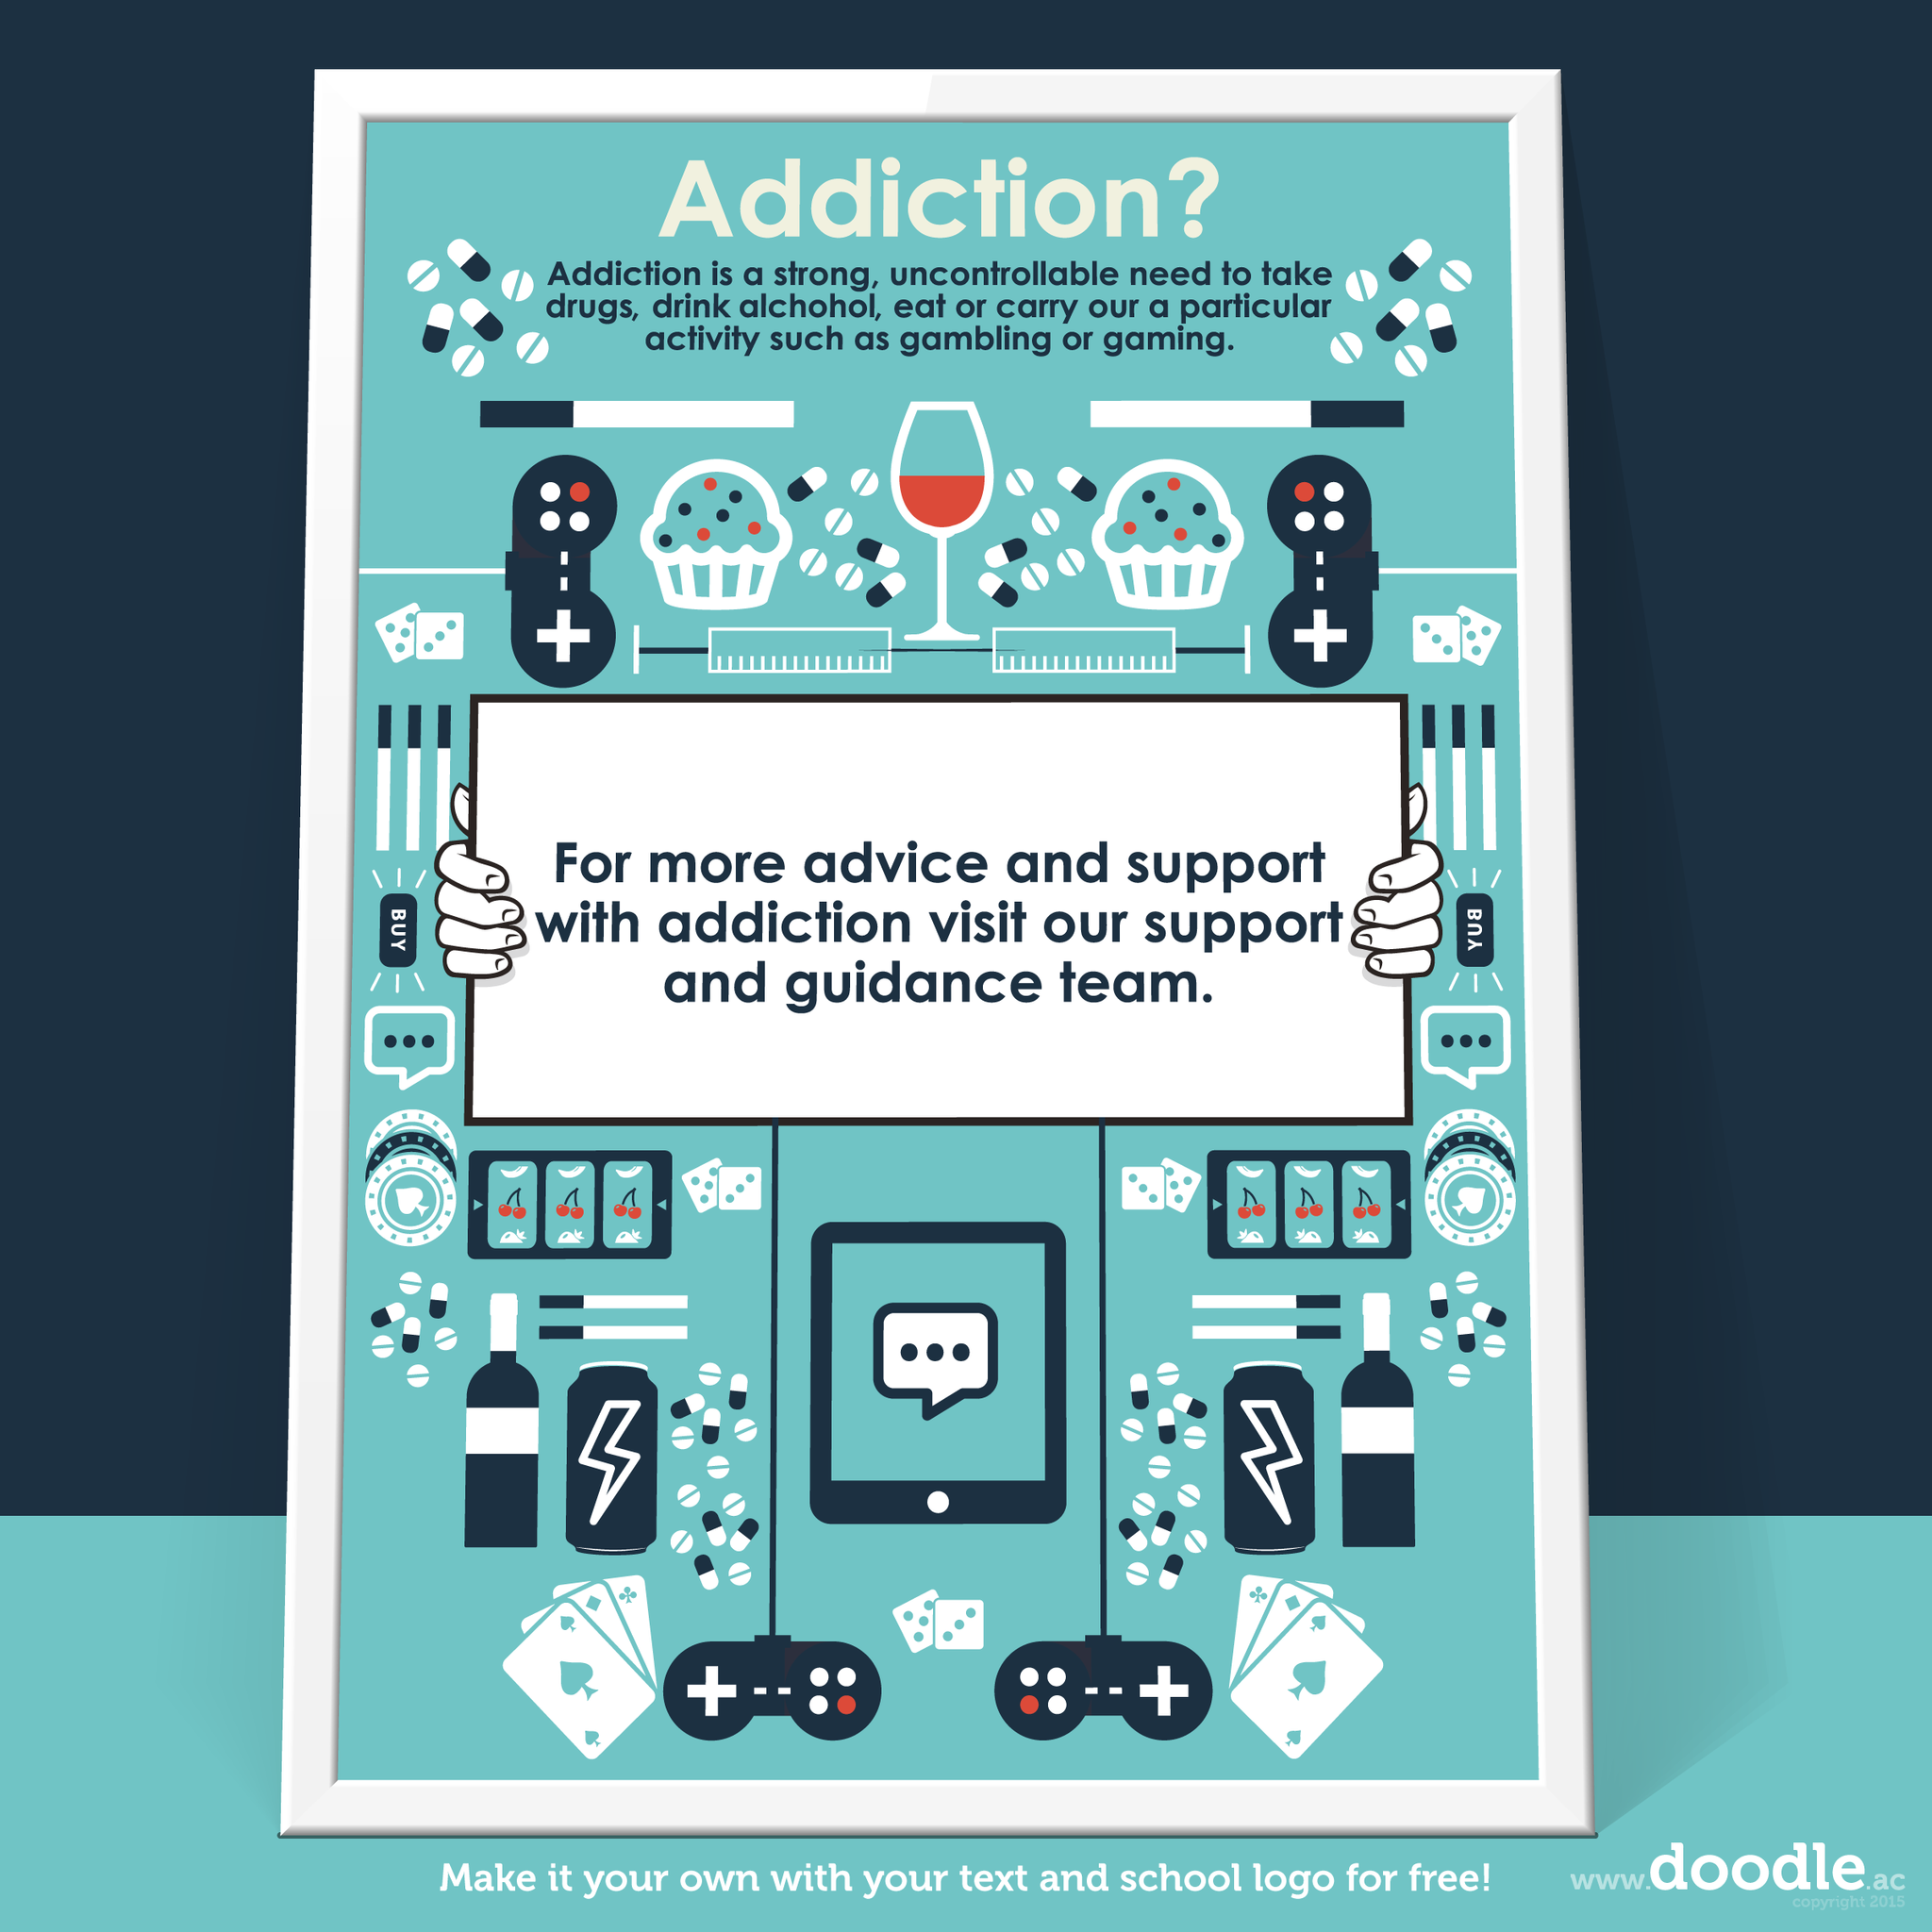 addiction poster - doodle education